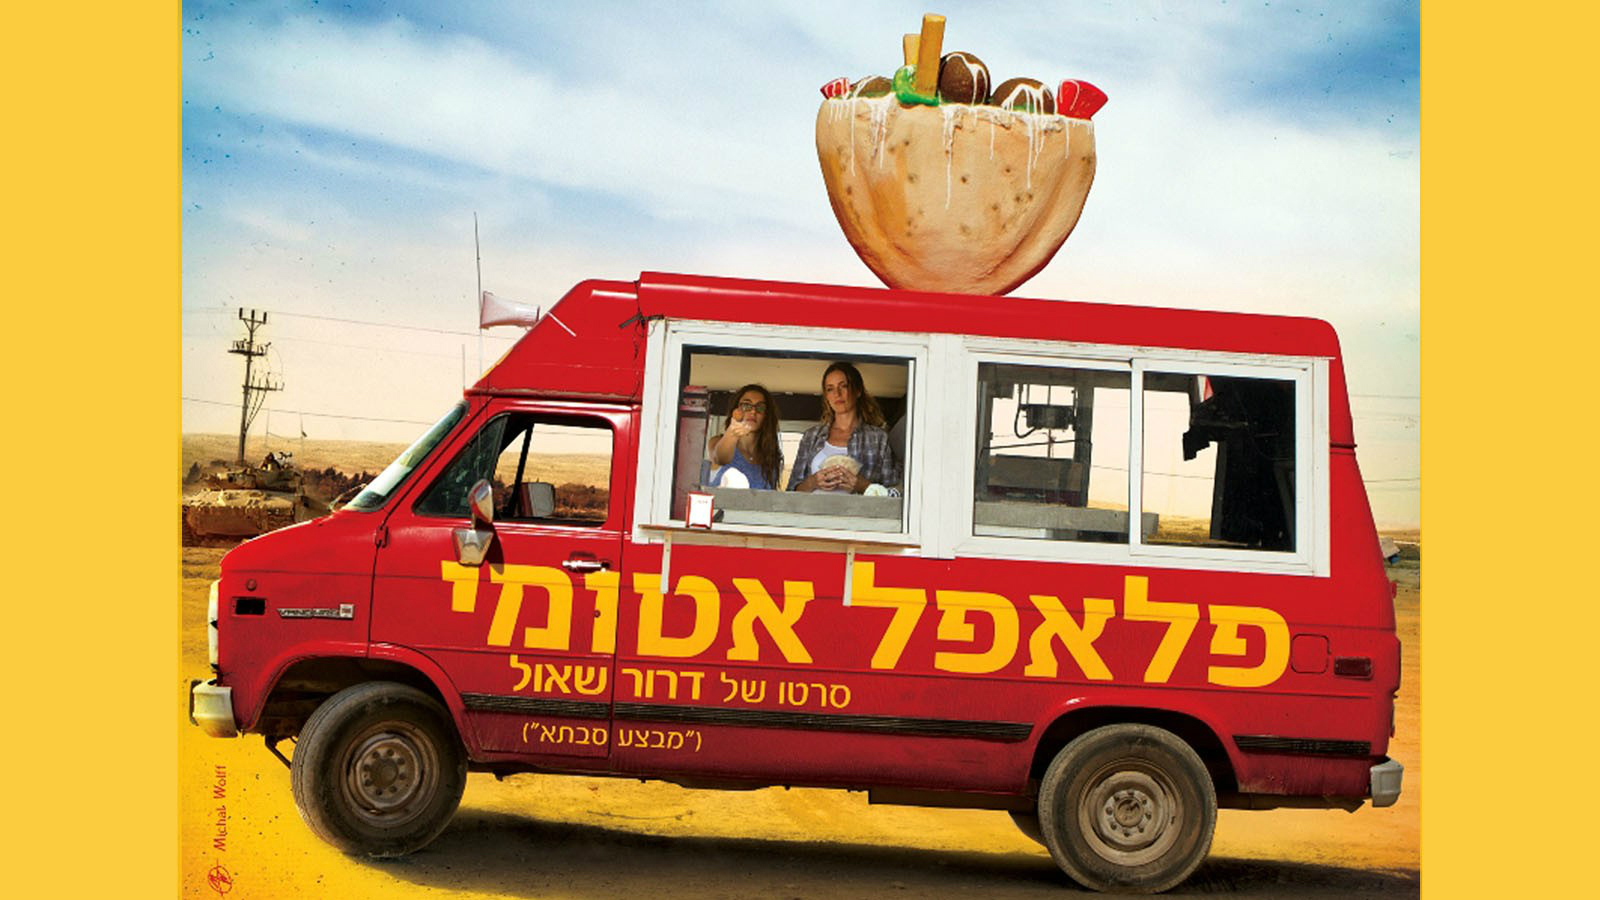 Atomic Falafel movie poster. Photo: courtesy